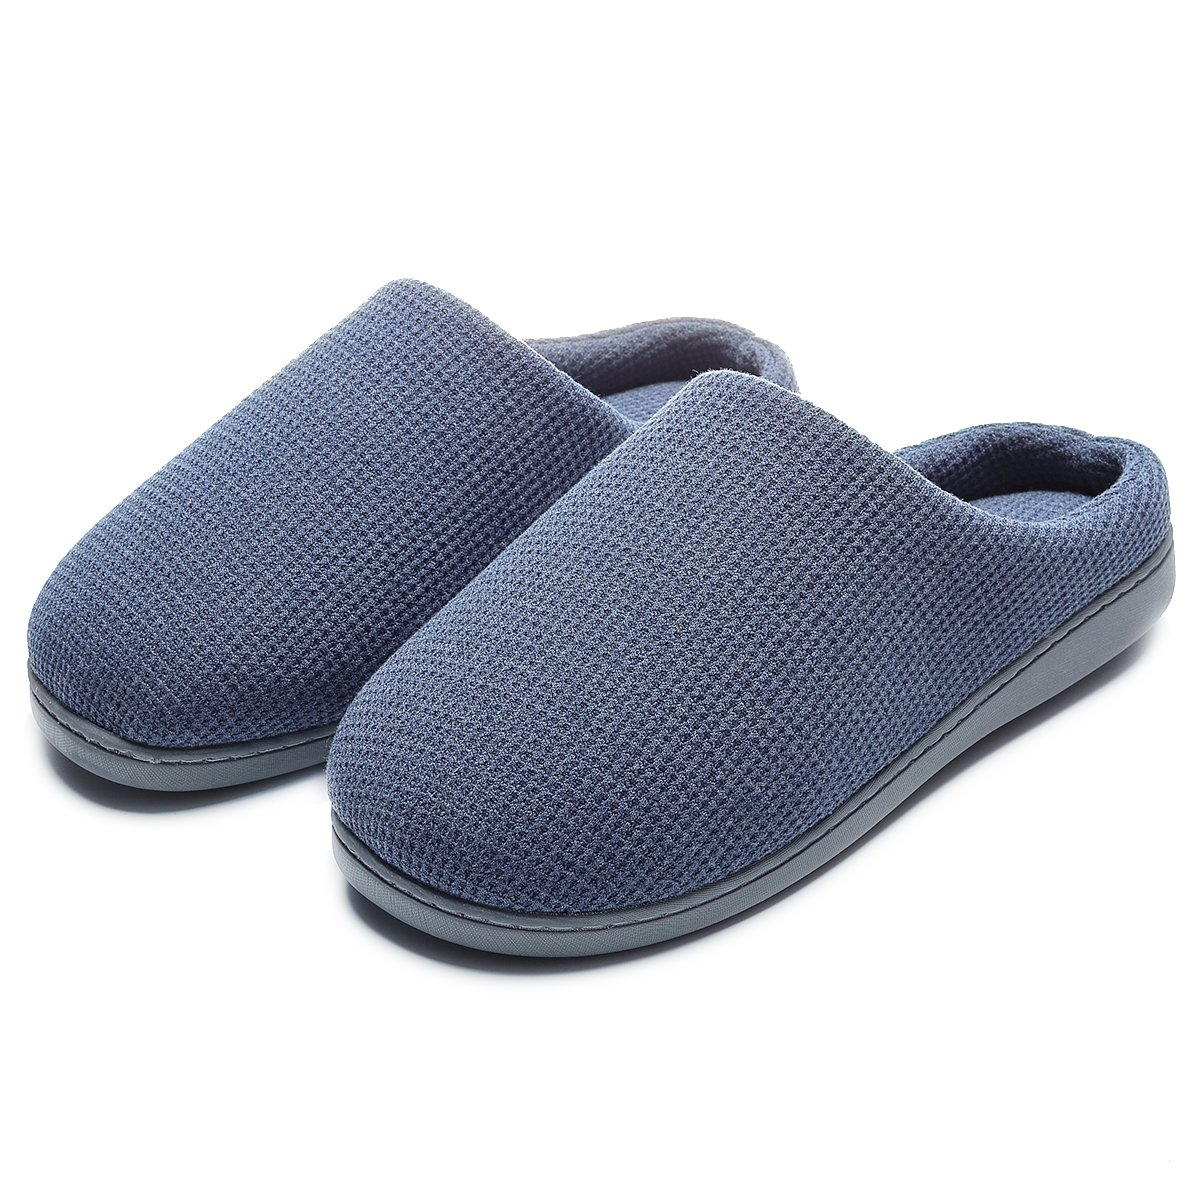 Men's Casual Cute Warm Slip-on House Slippers Flats Anti-Slip Shoes Navy Blue US 7-8